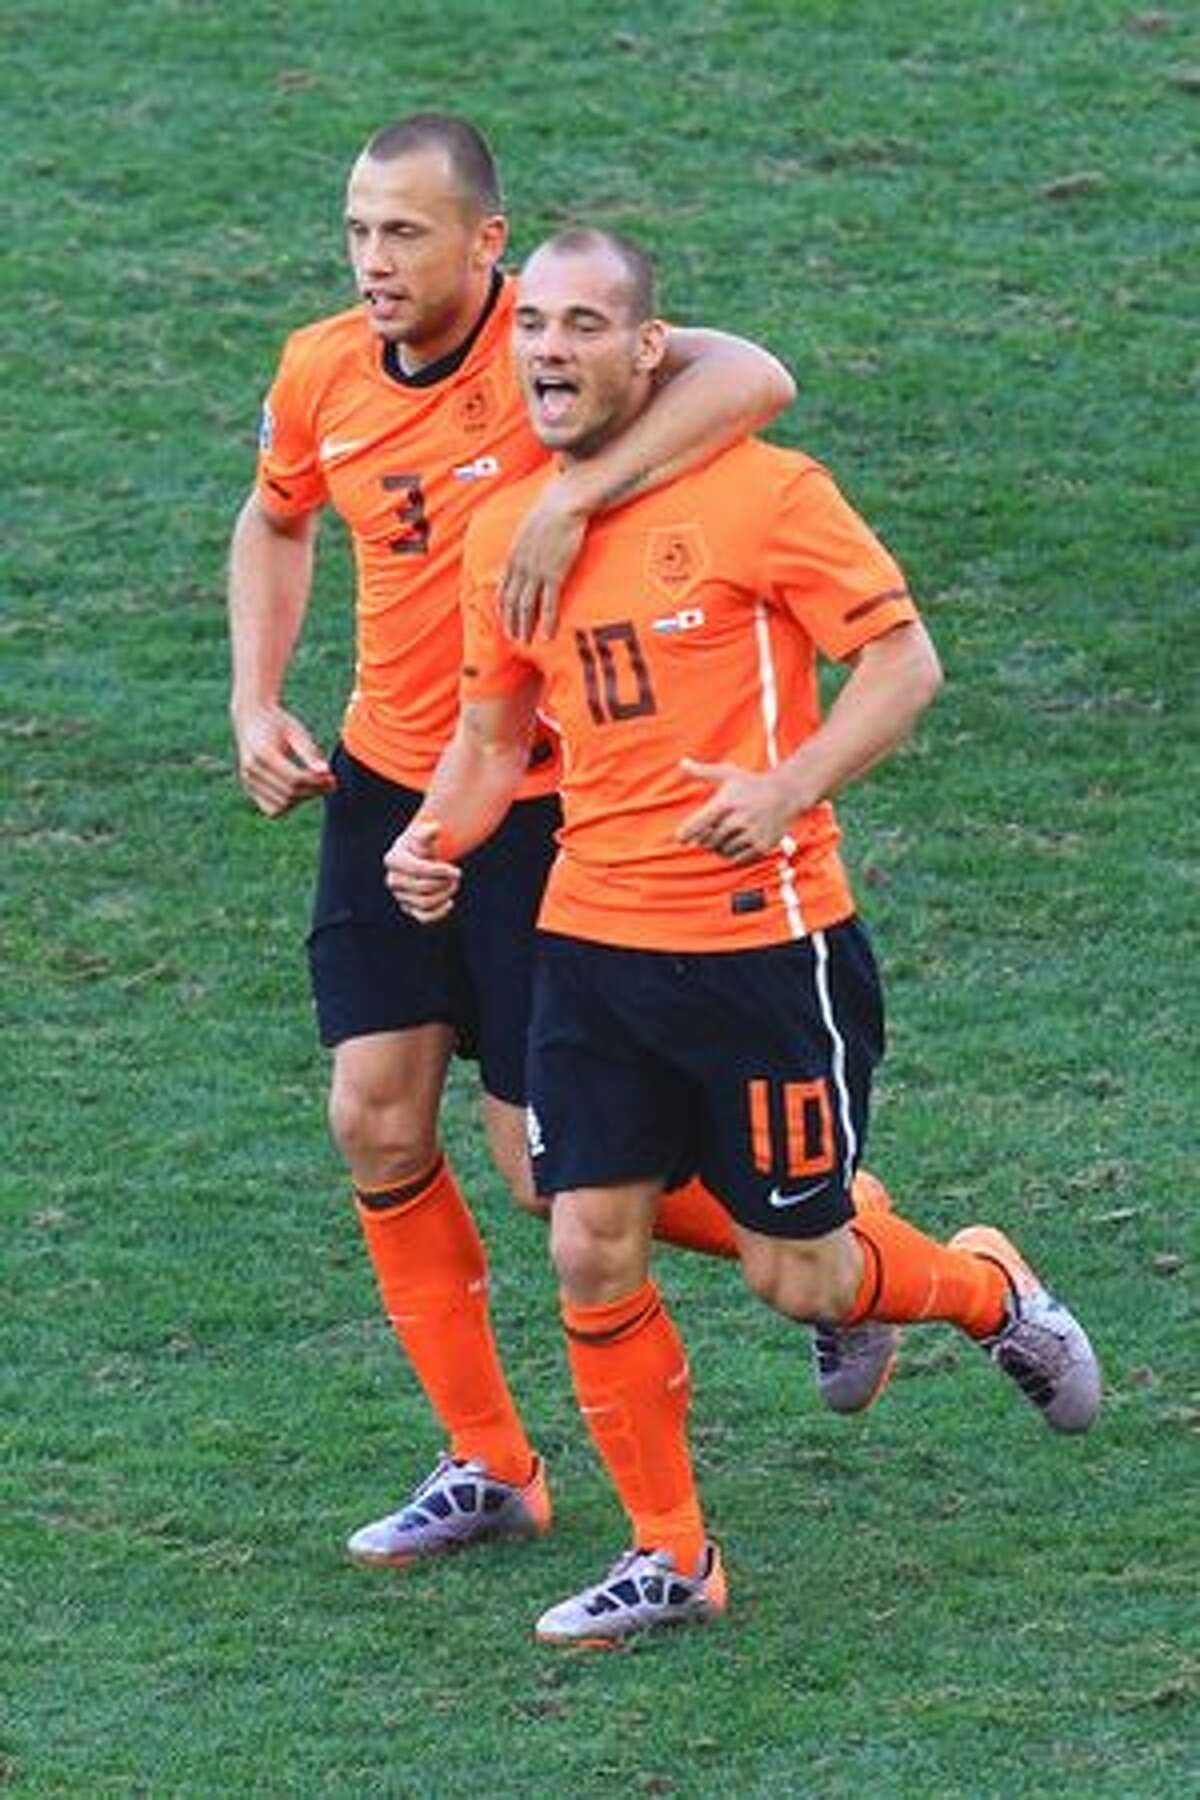 Wesley Sneijder of the Netherlands (R) celebrates scoring the opening goal with team mate John Heitinga during the 2010 FIFA World Cup South Africa Group E match between Netherlands and Japan at Durban Stadium on June 19, 2010 in Durban, South Africa.